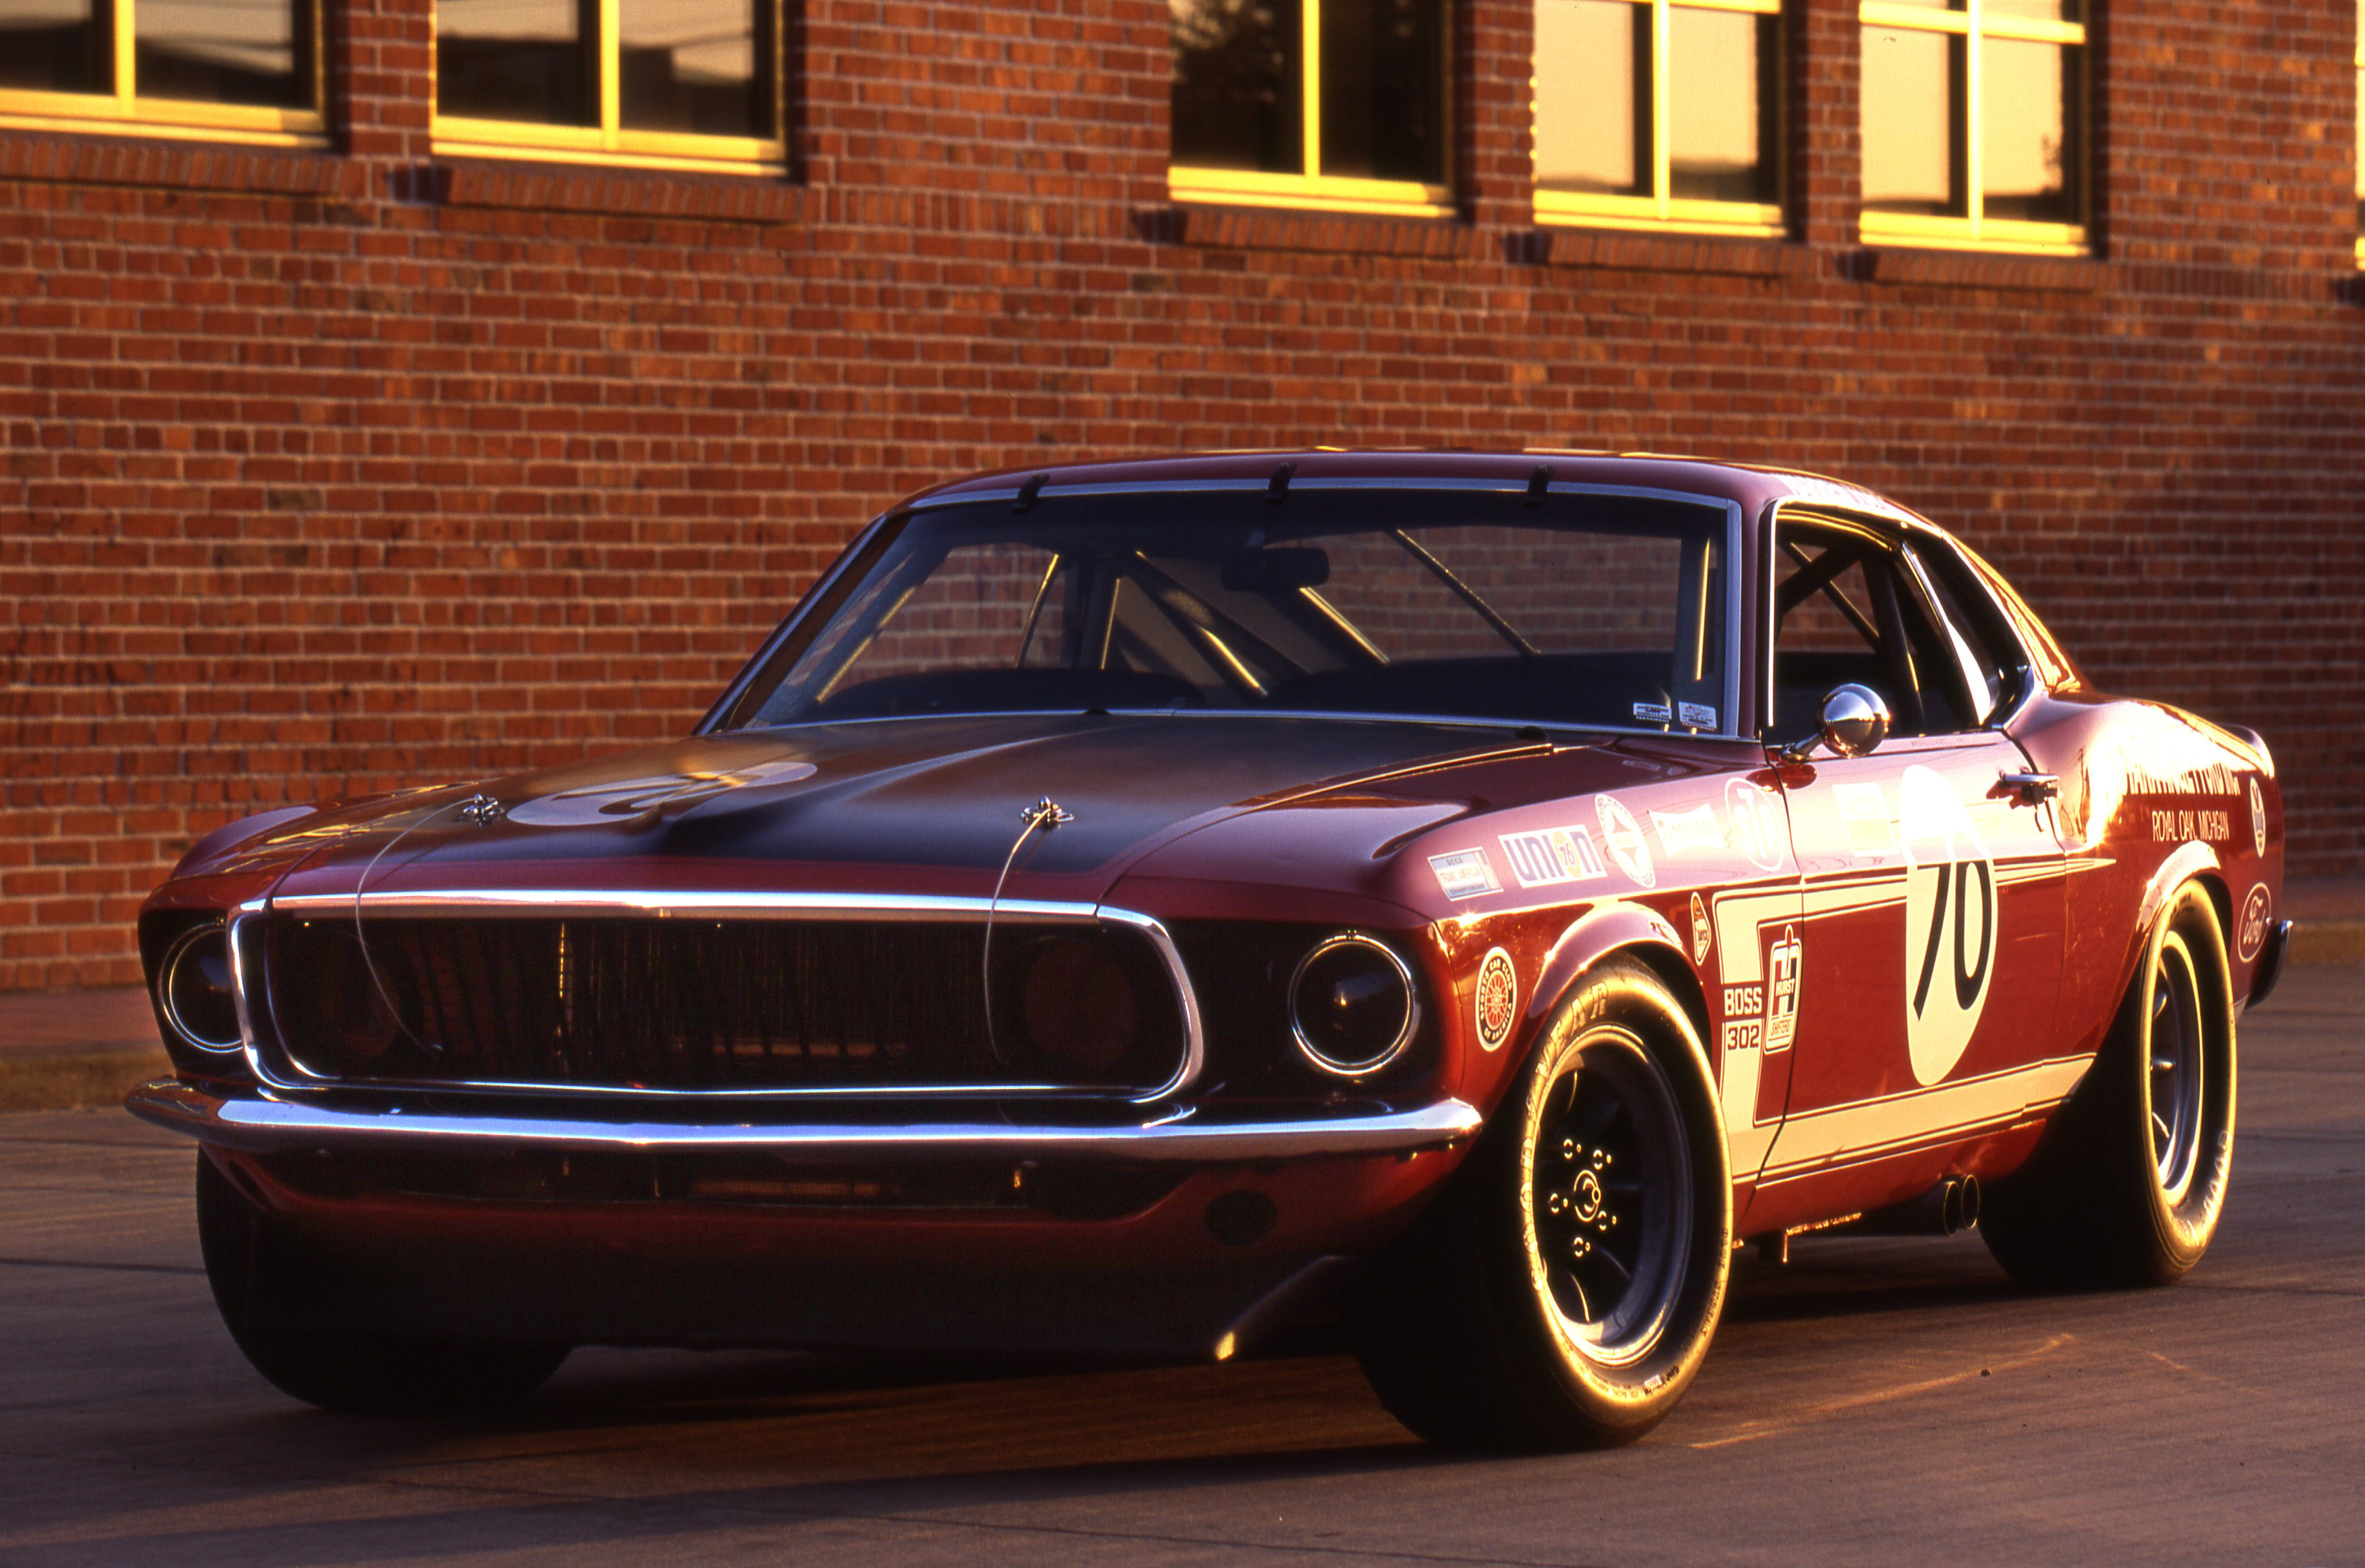 Red Ford Mustang